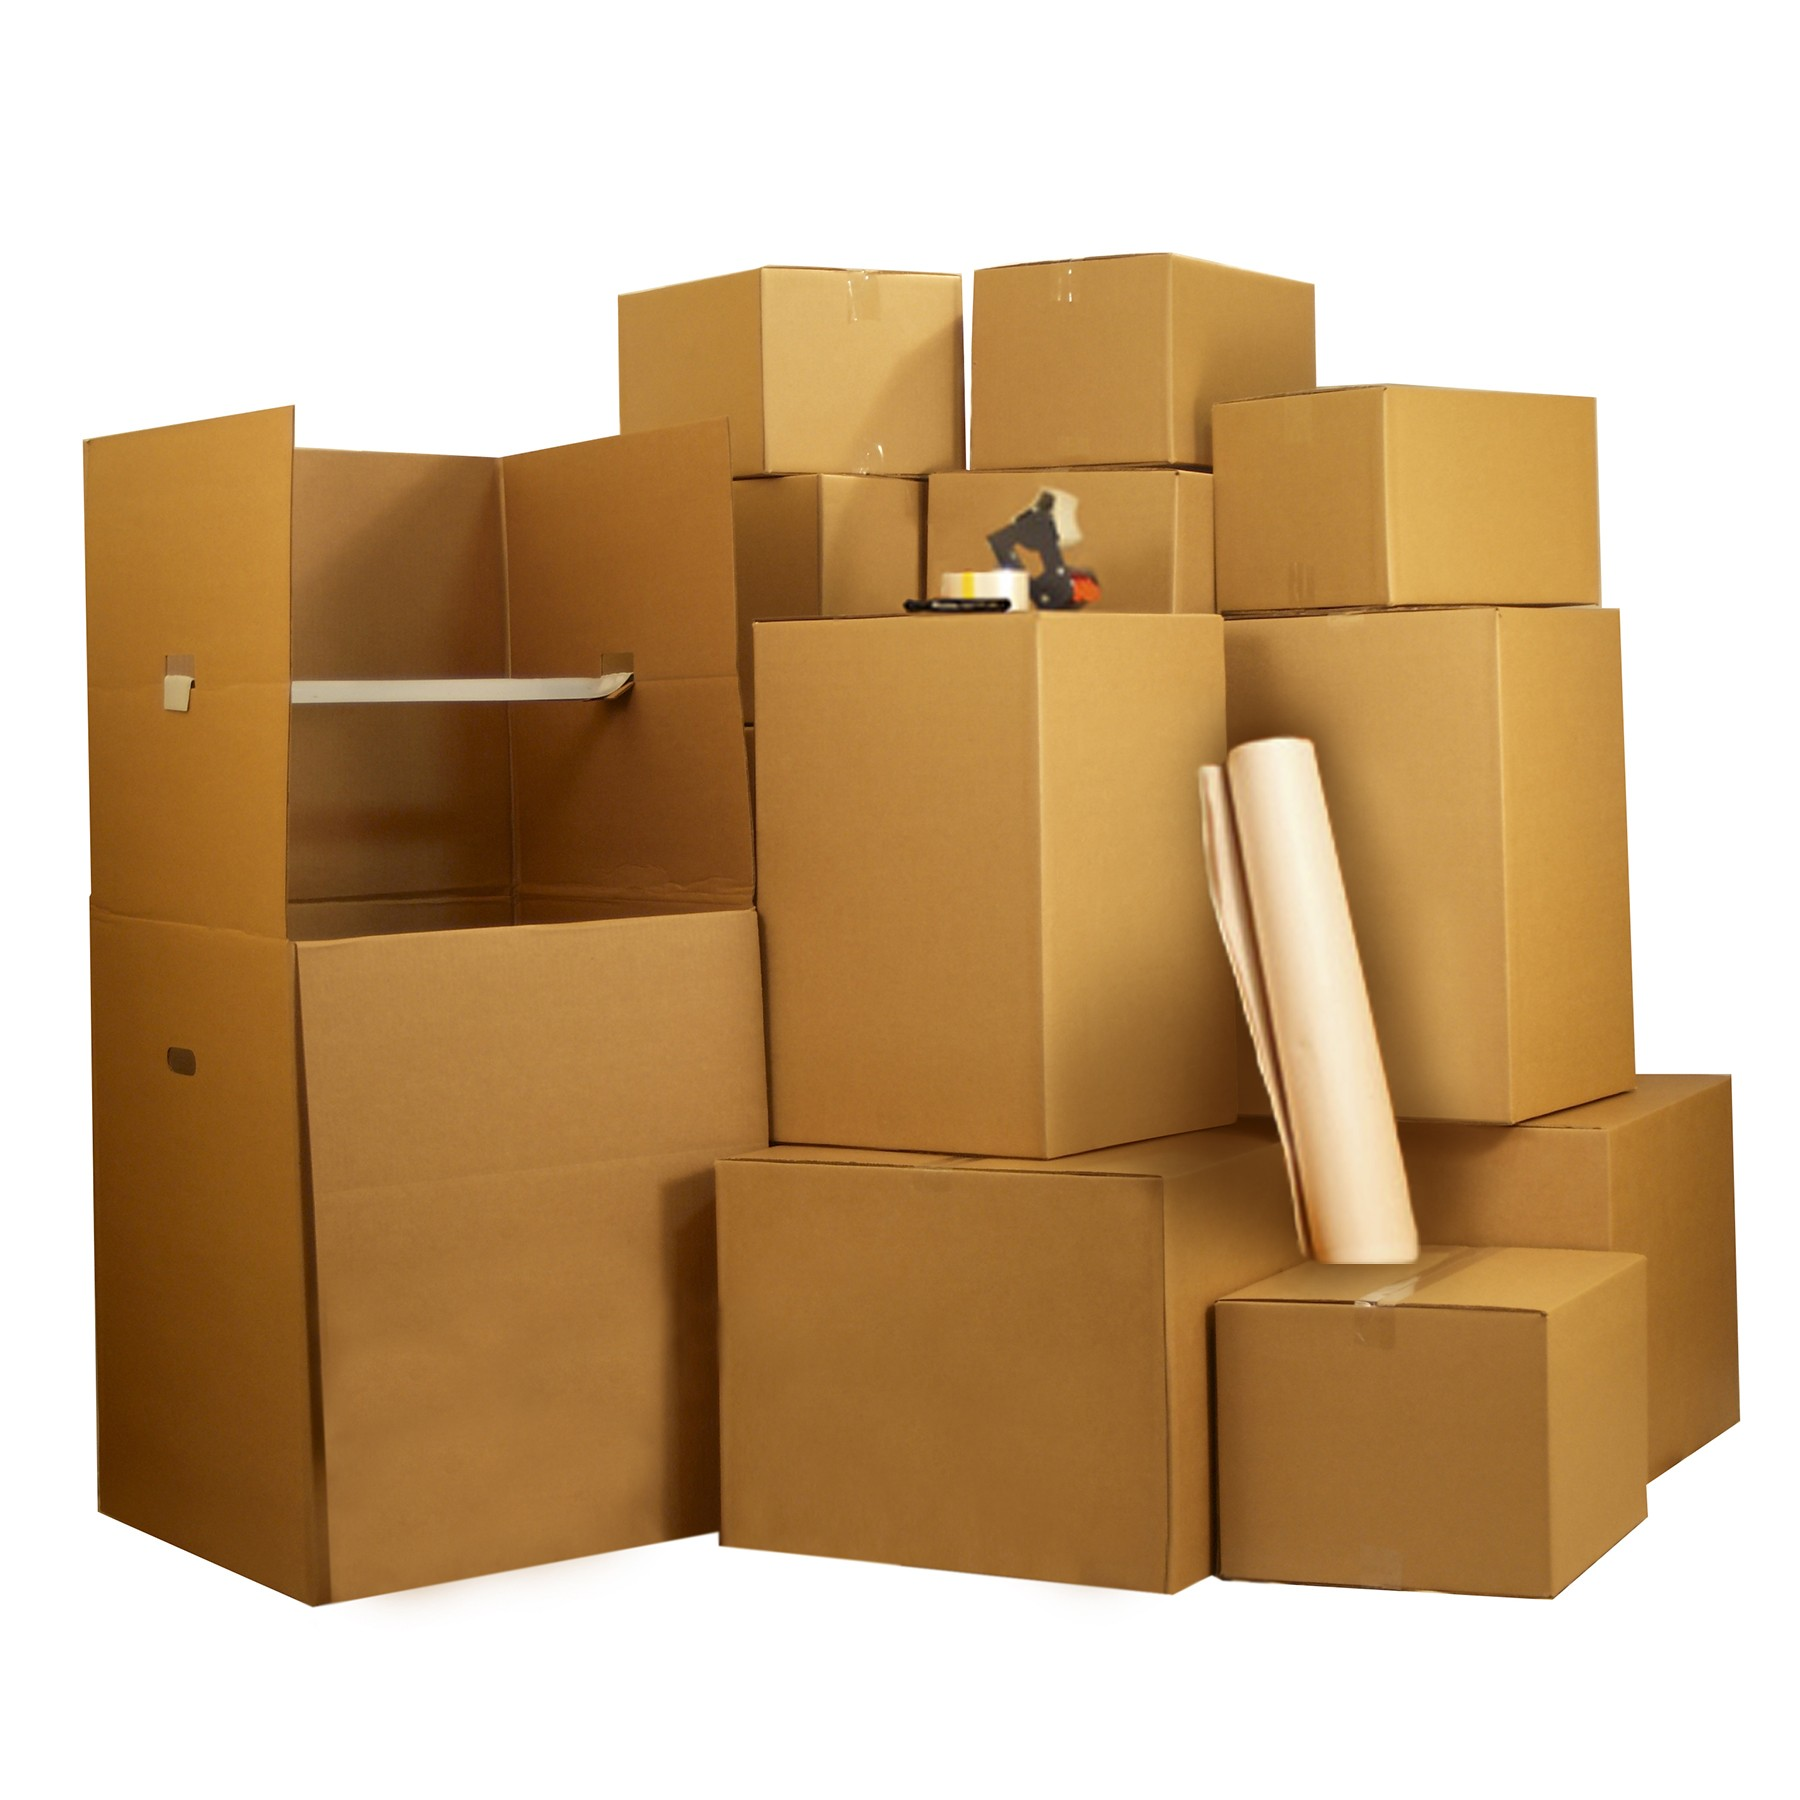 Box Room Wardrobe Uboxes 3 Room Wardrobe Kit 33 Boxes Bubble Roll Moving Supplies